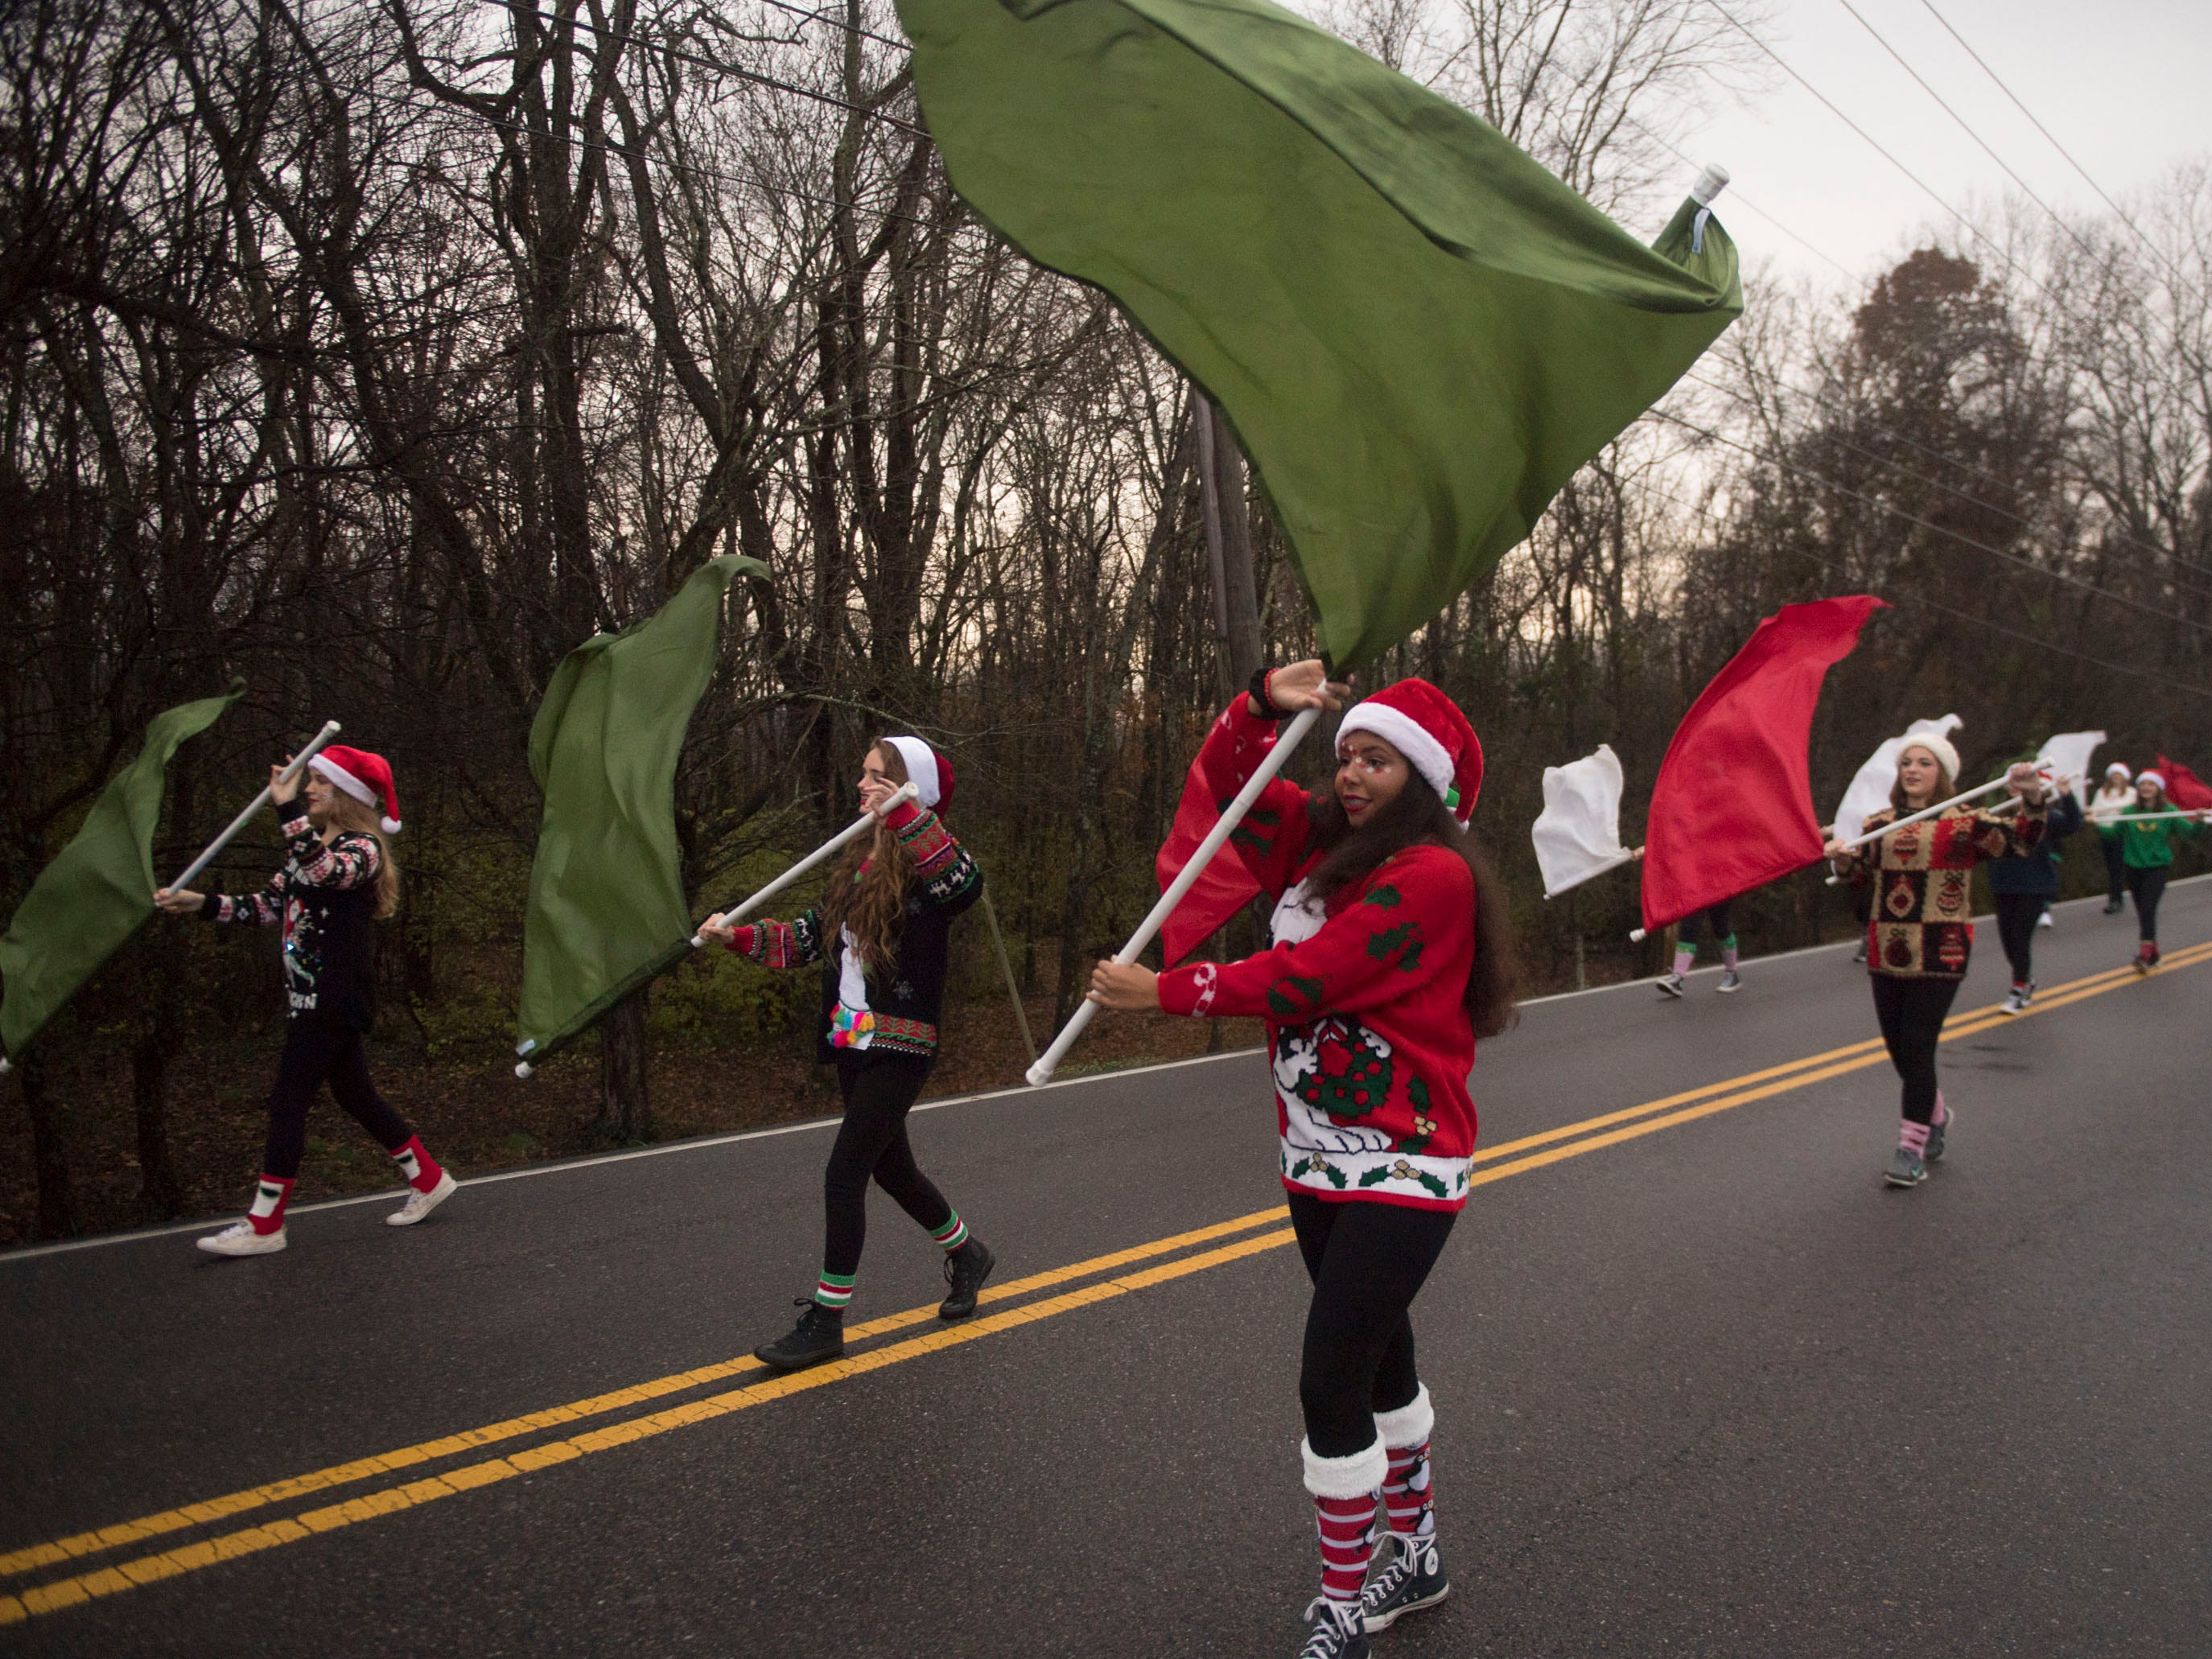 The Powell High School Marching Panther Band Color Guard participating in the Powell Lions Club Christmas Parade on Saturday, December 1, 2018.